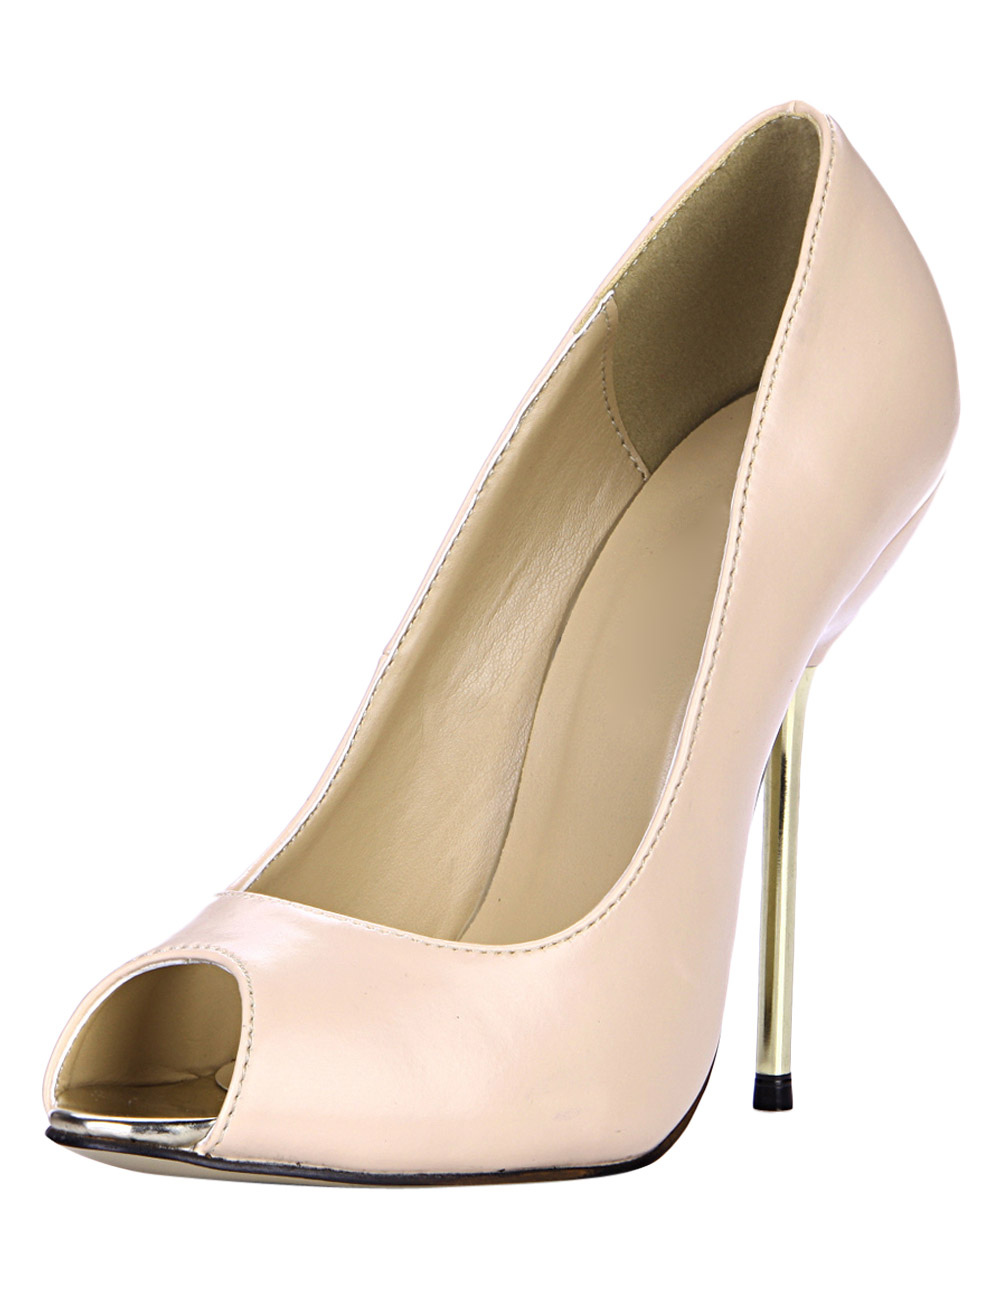 Nude PU Leather Fabulous Peep Toe Stiletto Heel Shoes